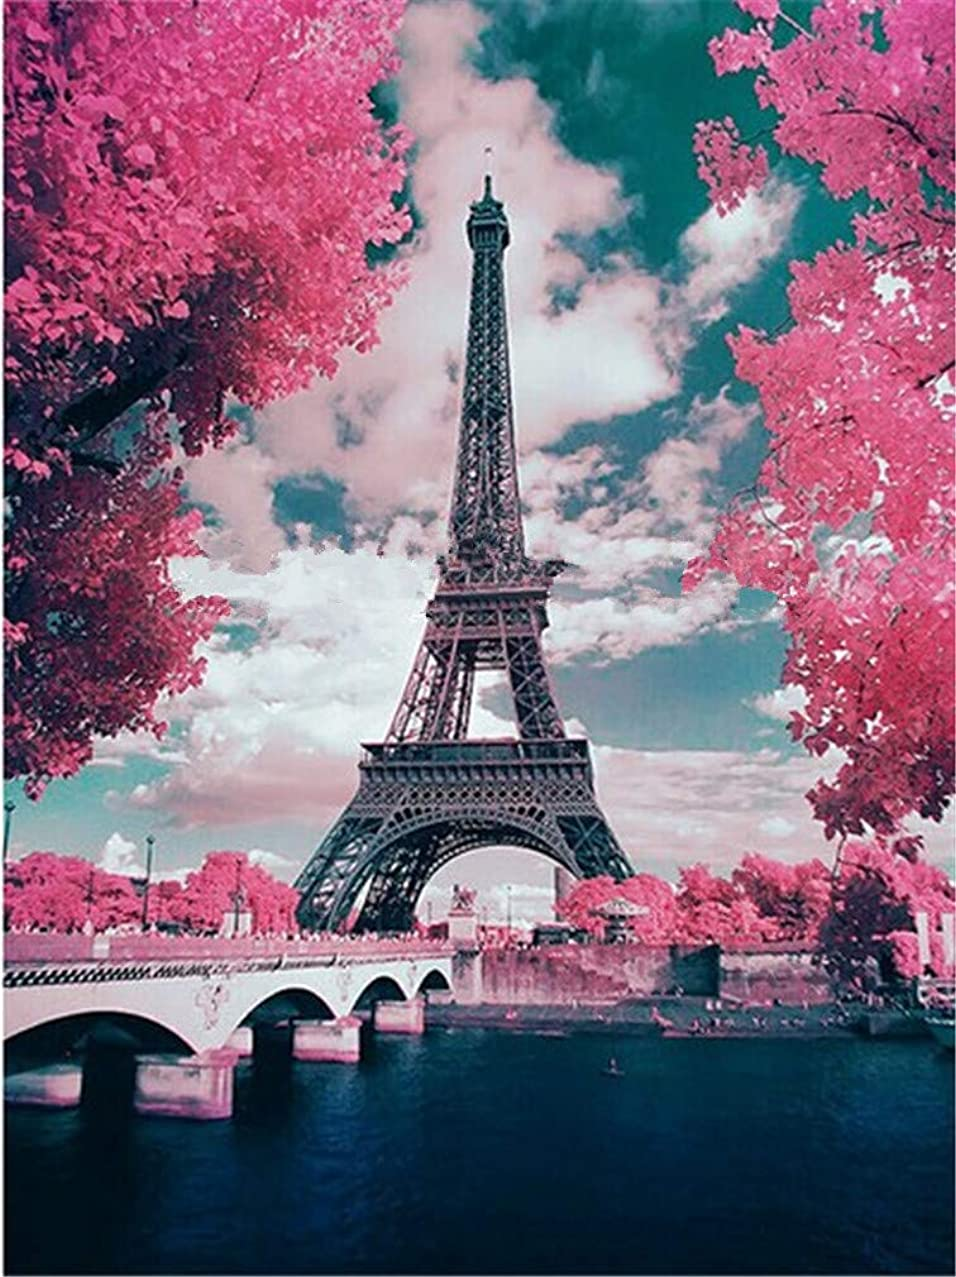 YEESAM ART DIY Paint by Numbers for Adults Beginner Kids, France Paris Eiffel Tower, Romantic Cherry Blossom 16x20 inch Linen Canvas Acrylic Stress Less Number Painting Gifts (France, Without Frame)